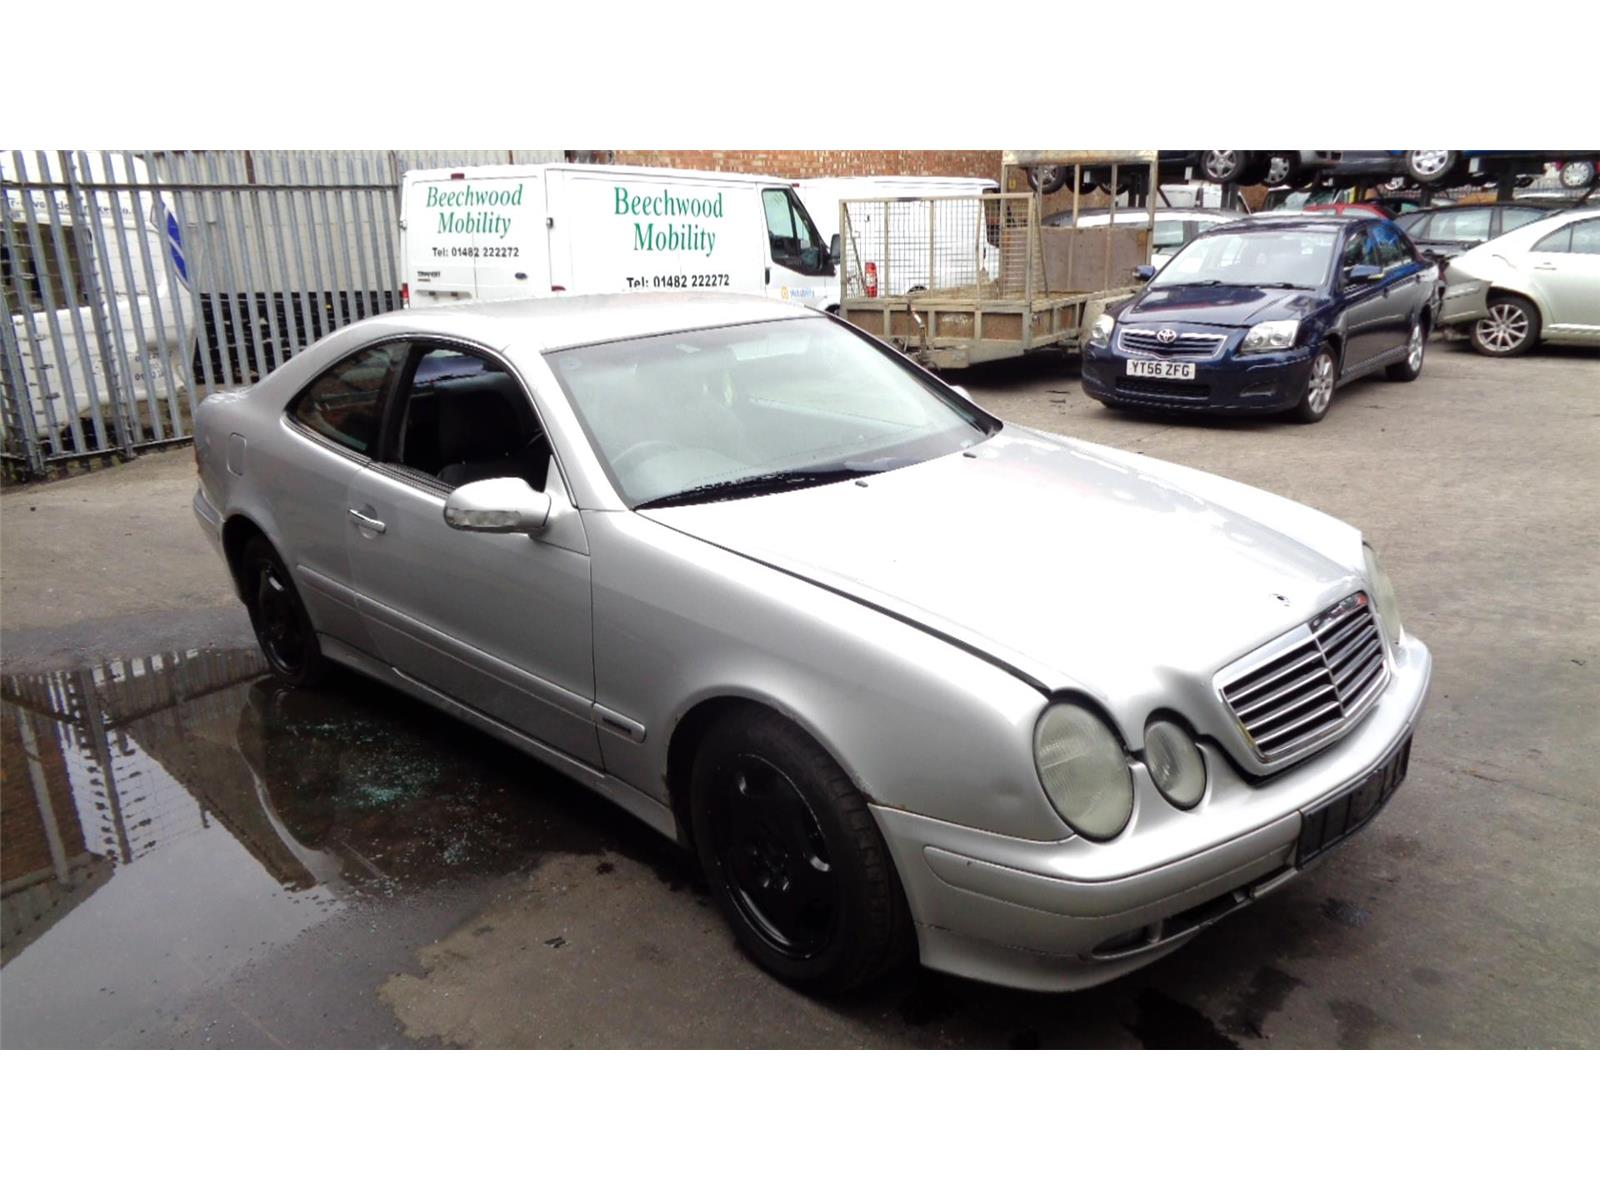 ... Mercedes-Benz CLK Class 1997 To 2002 2 Door Coupe ...